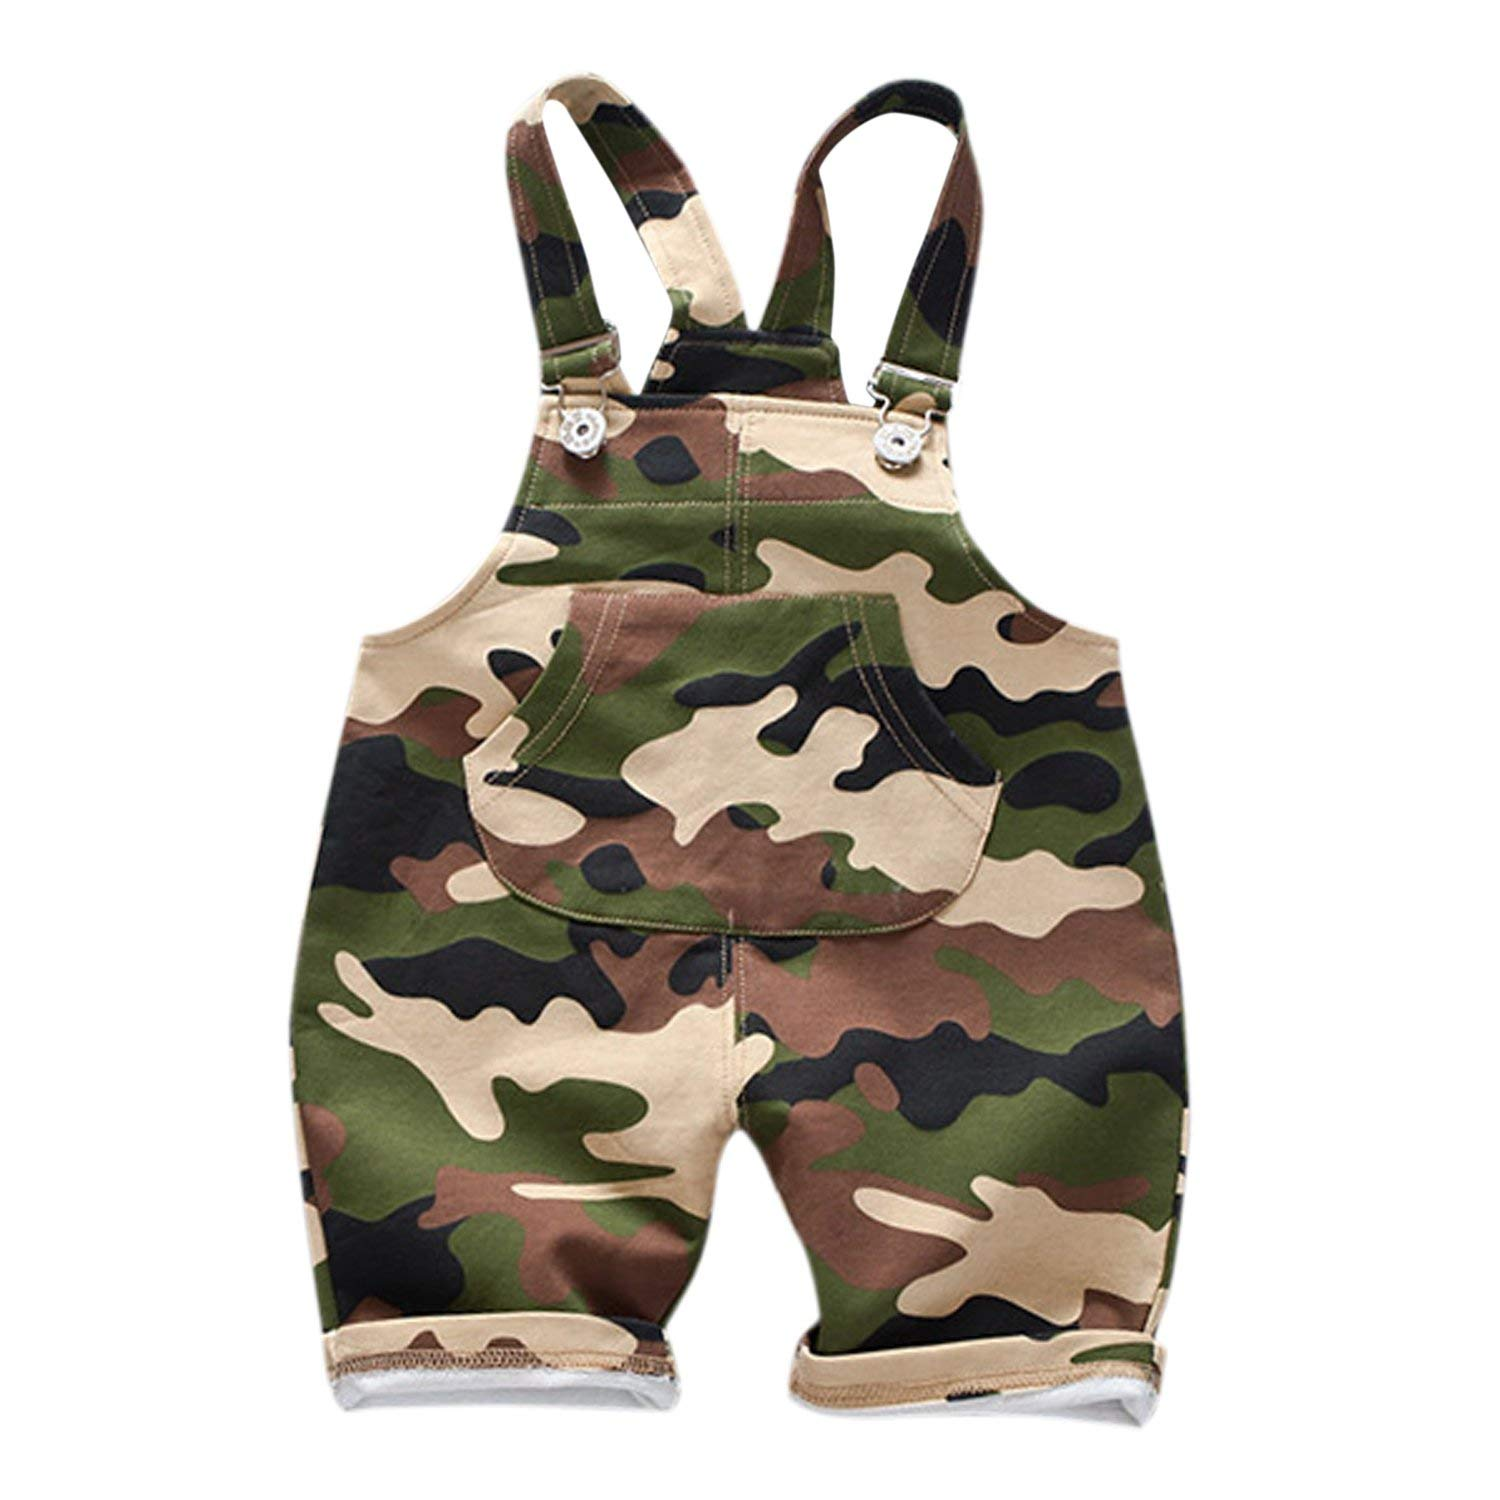 fe7e7c743c381 Get Quotations · Evelin LEE Baby Boys Cute Camo Bib Pants Sleeveless Romper  Jumpsuits Overalls